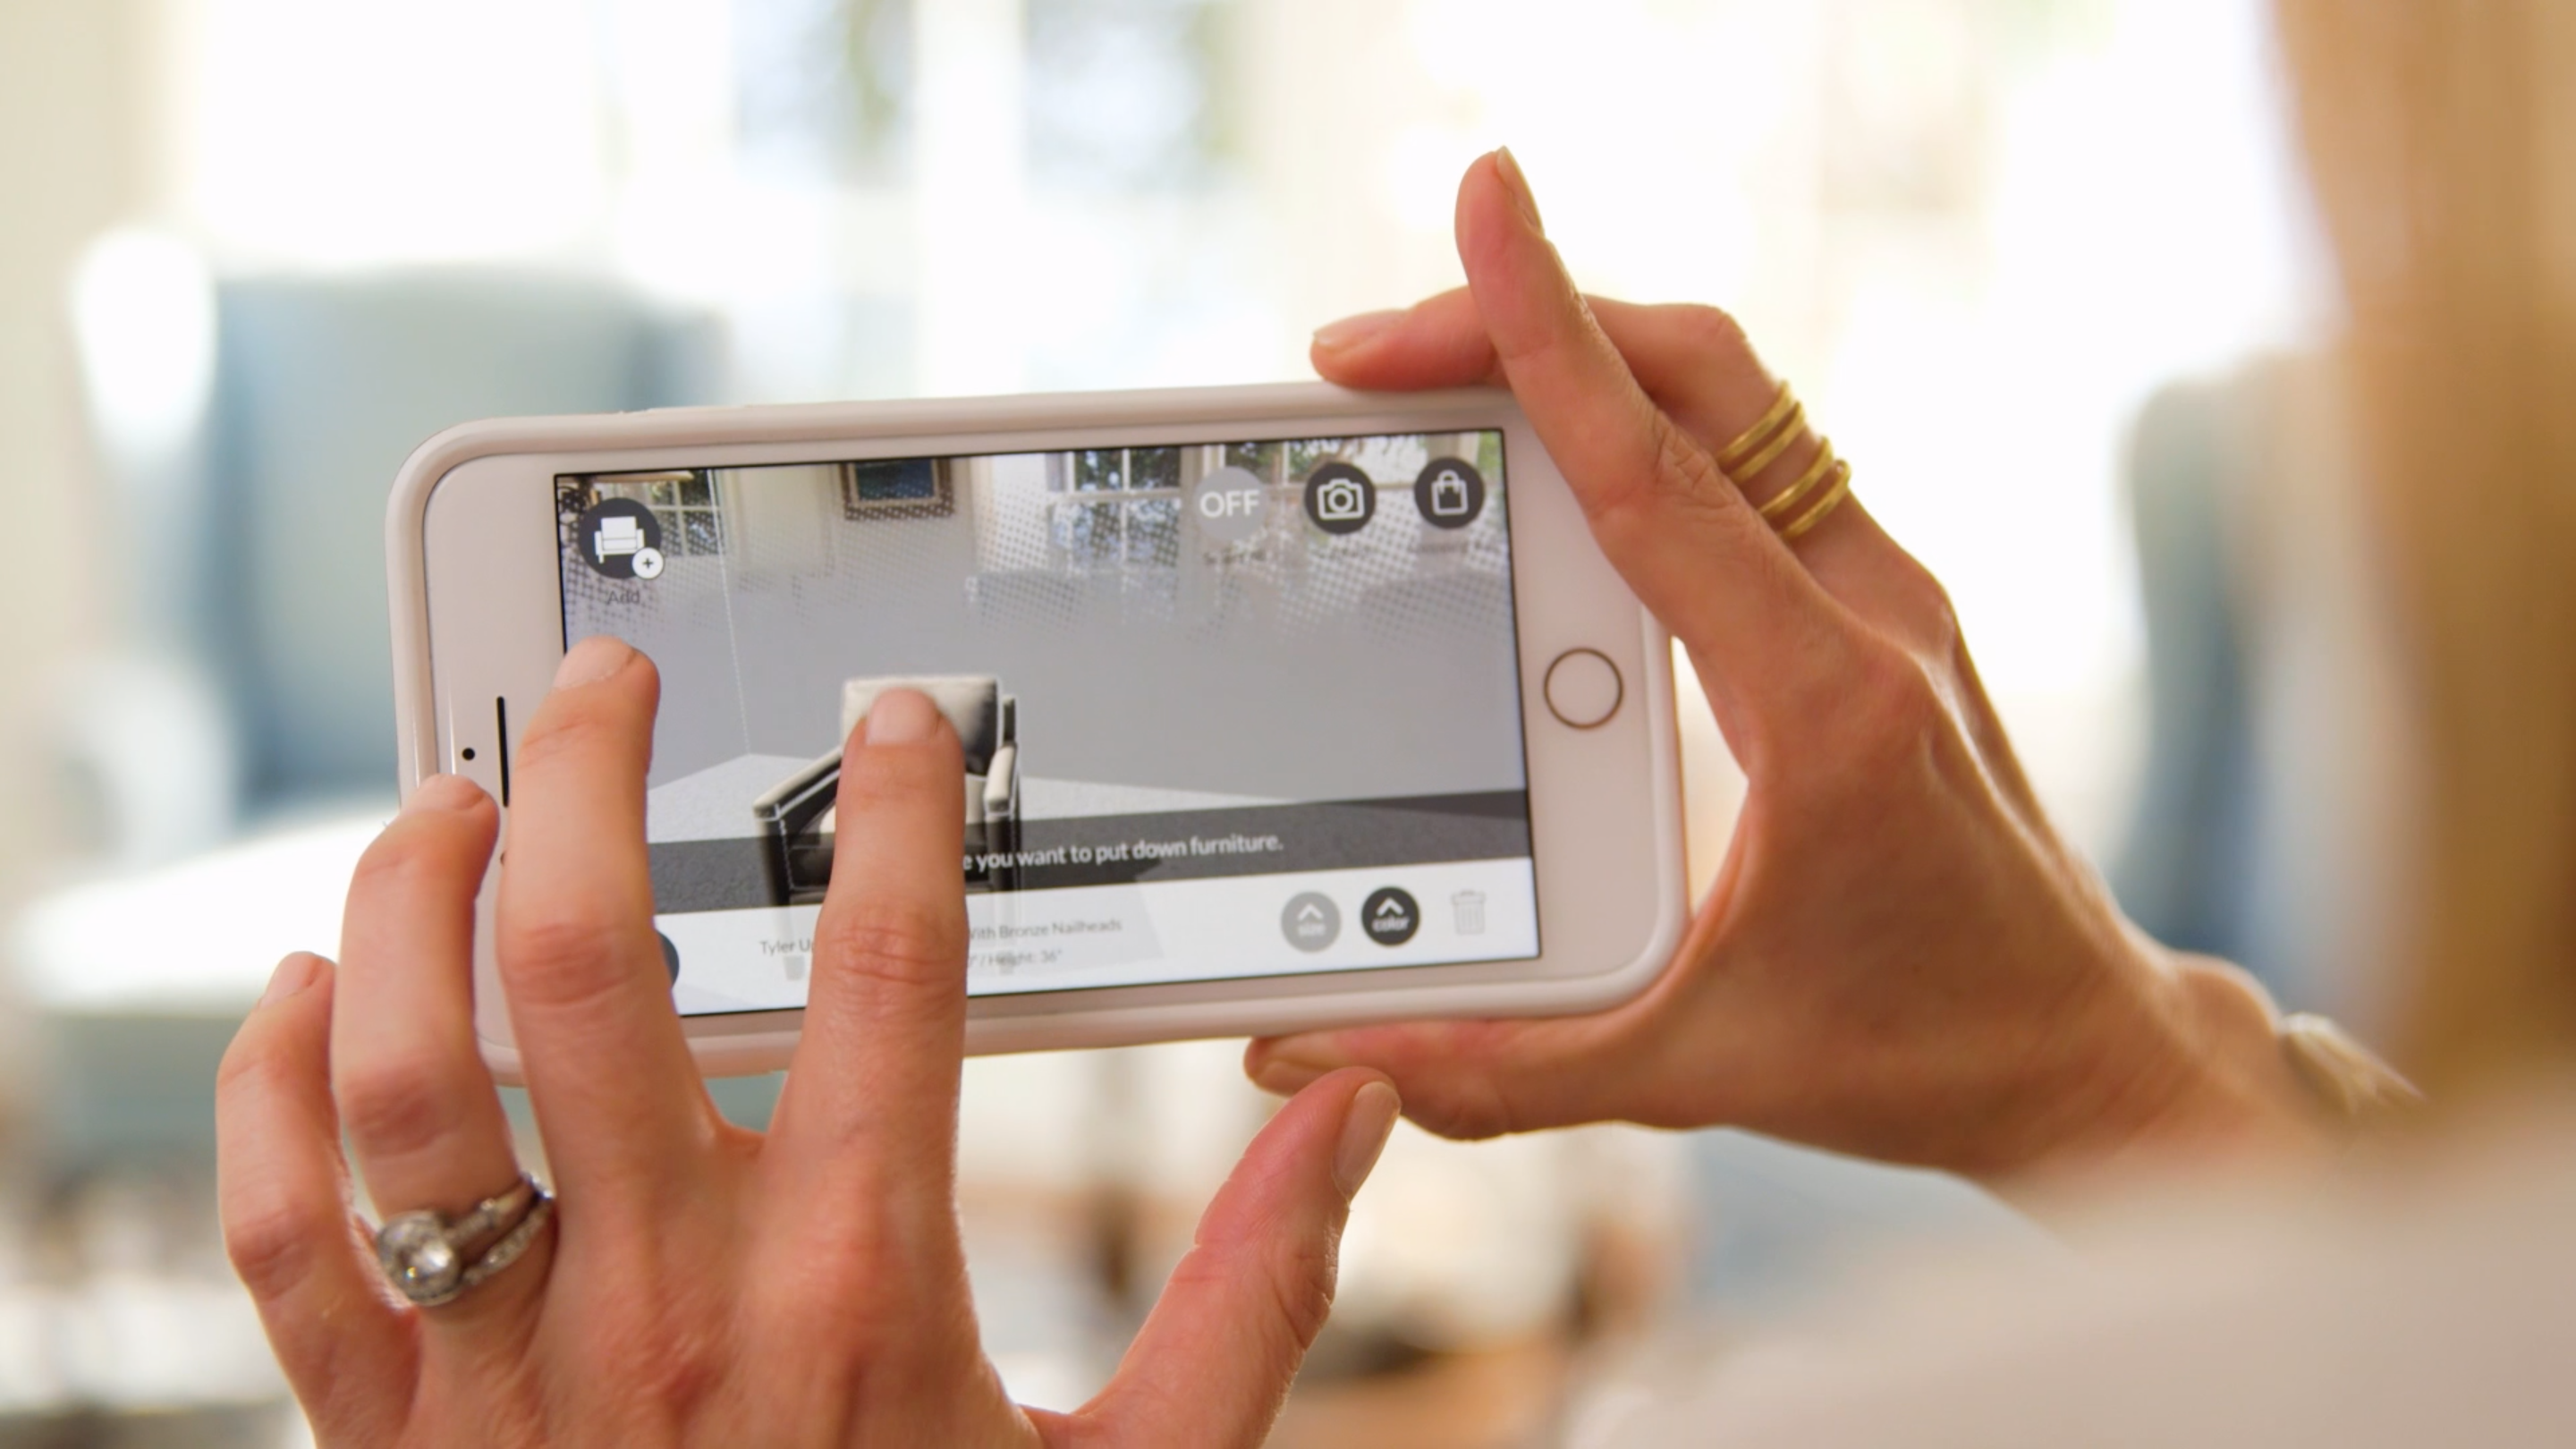 Two hands hold a mobile phone displaying an augmented reality app.